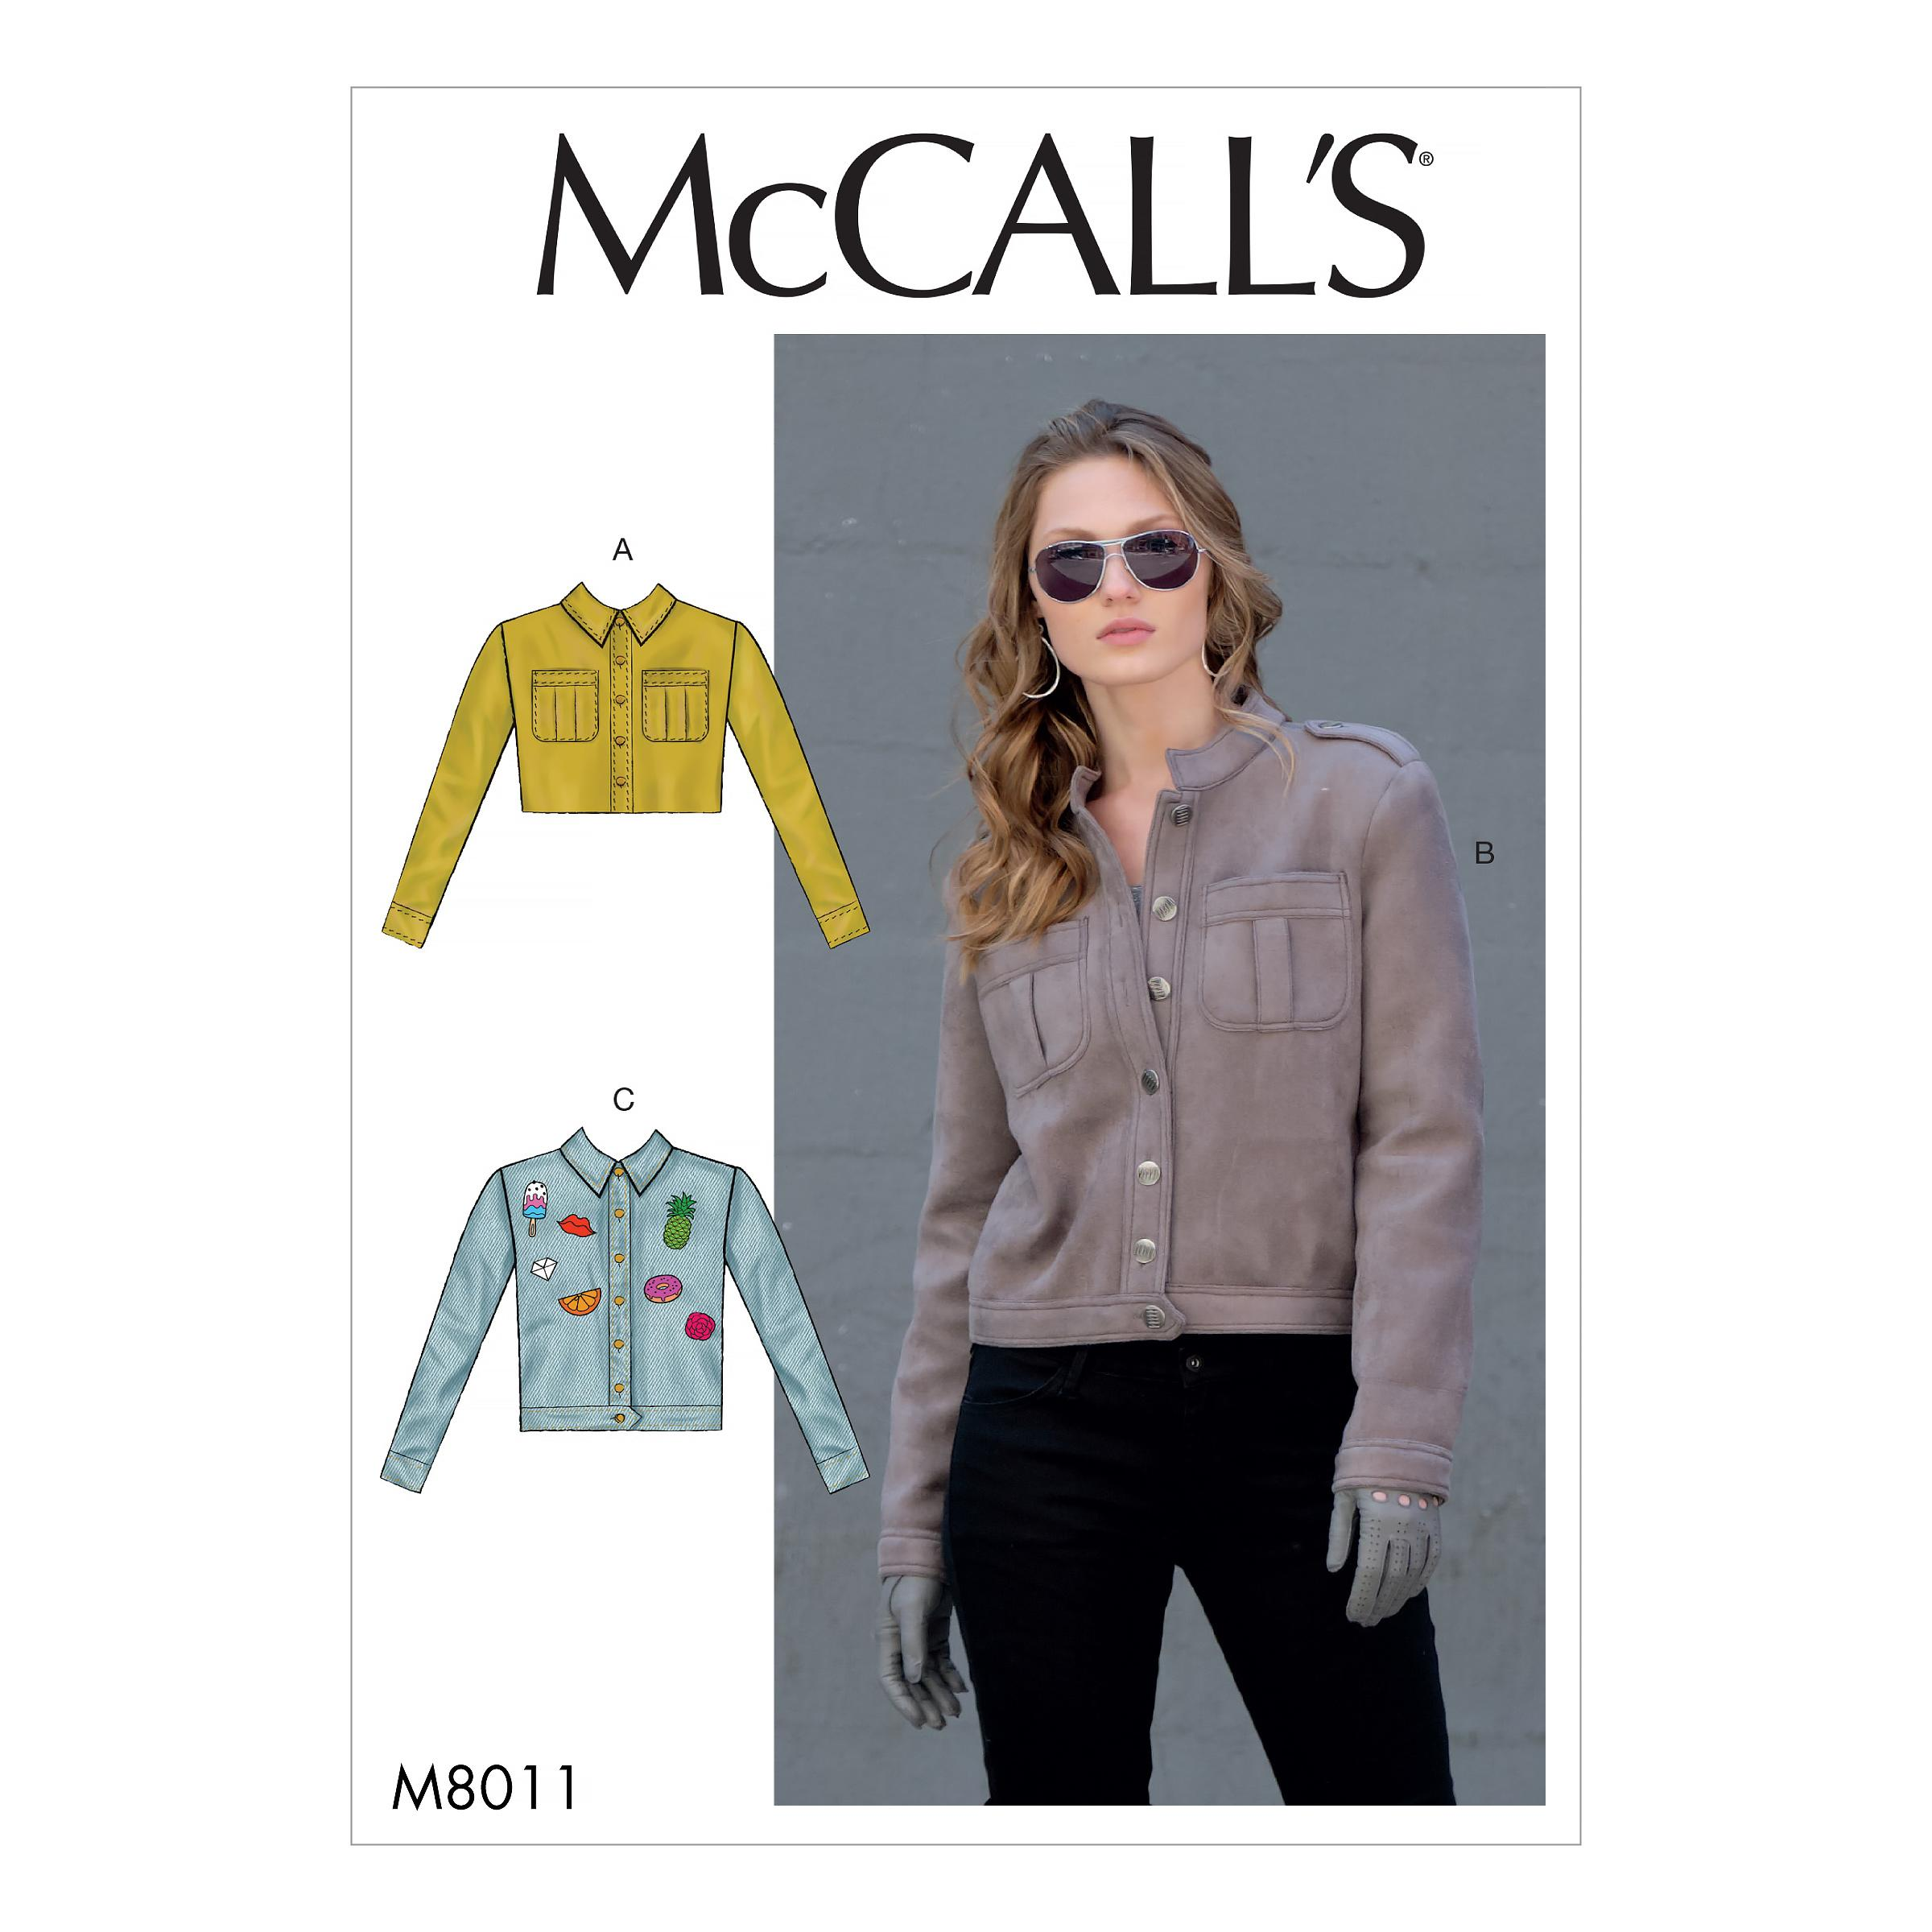 McCalls M8011 Misses Jackets & Vests